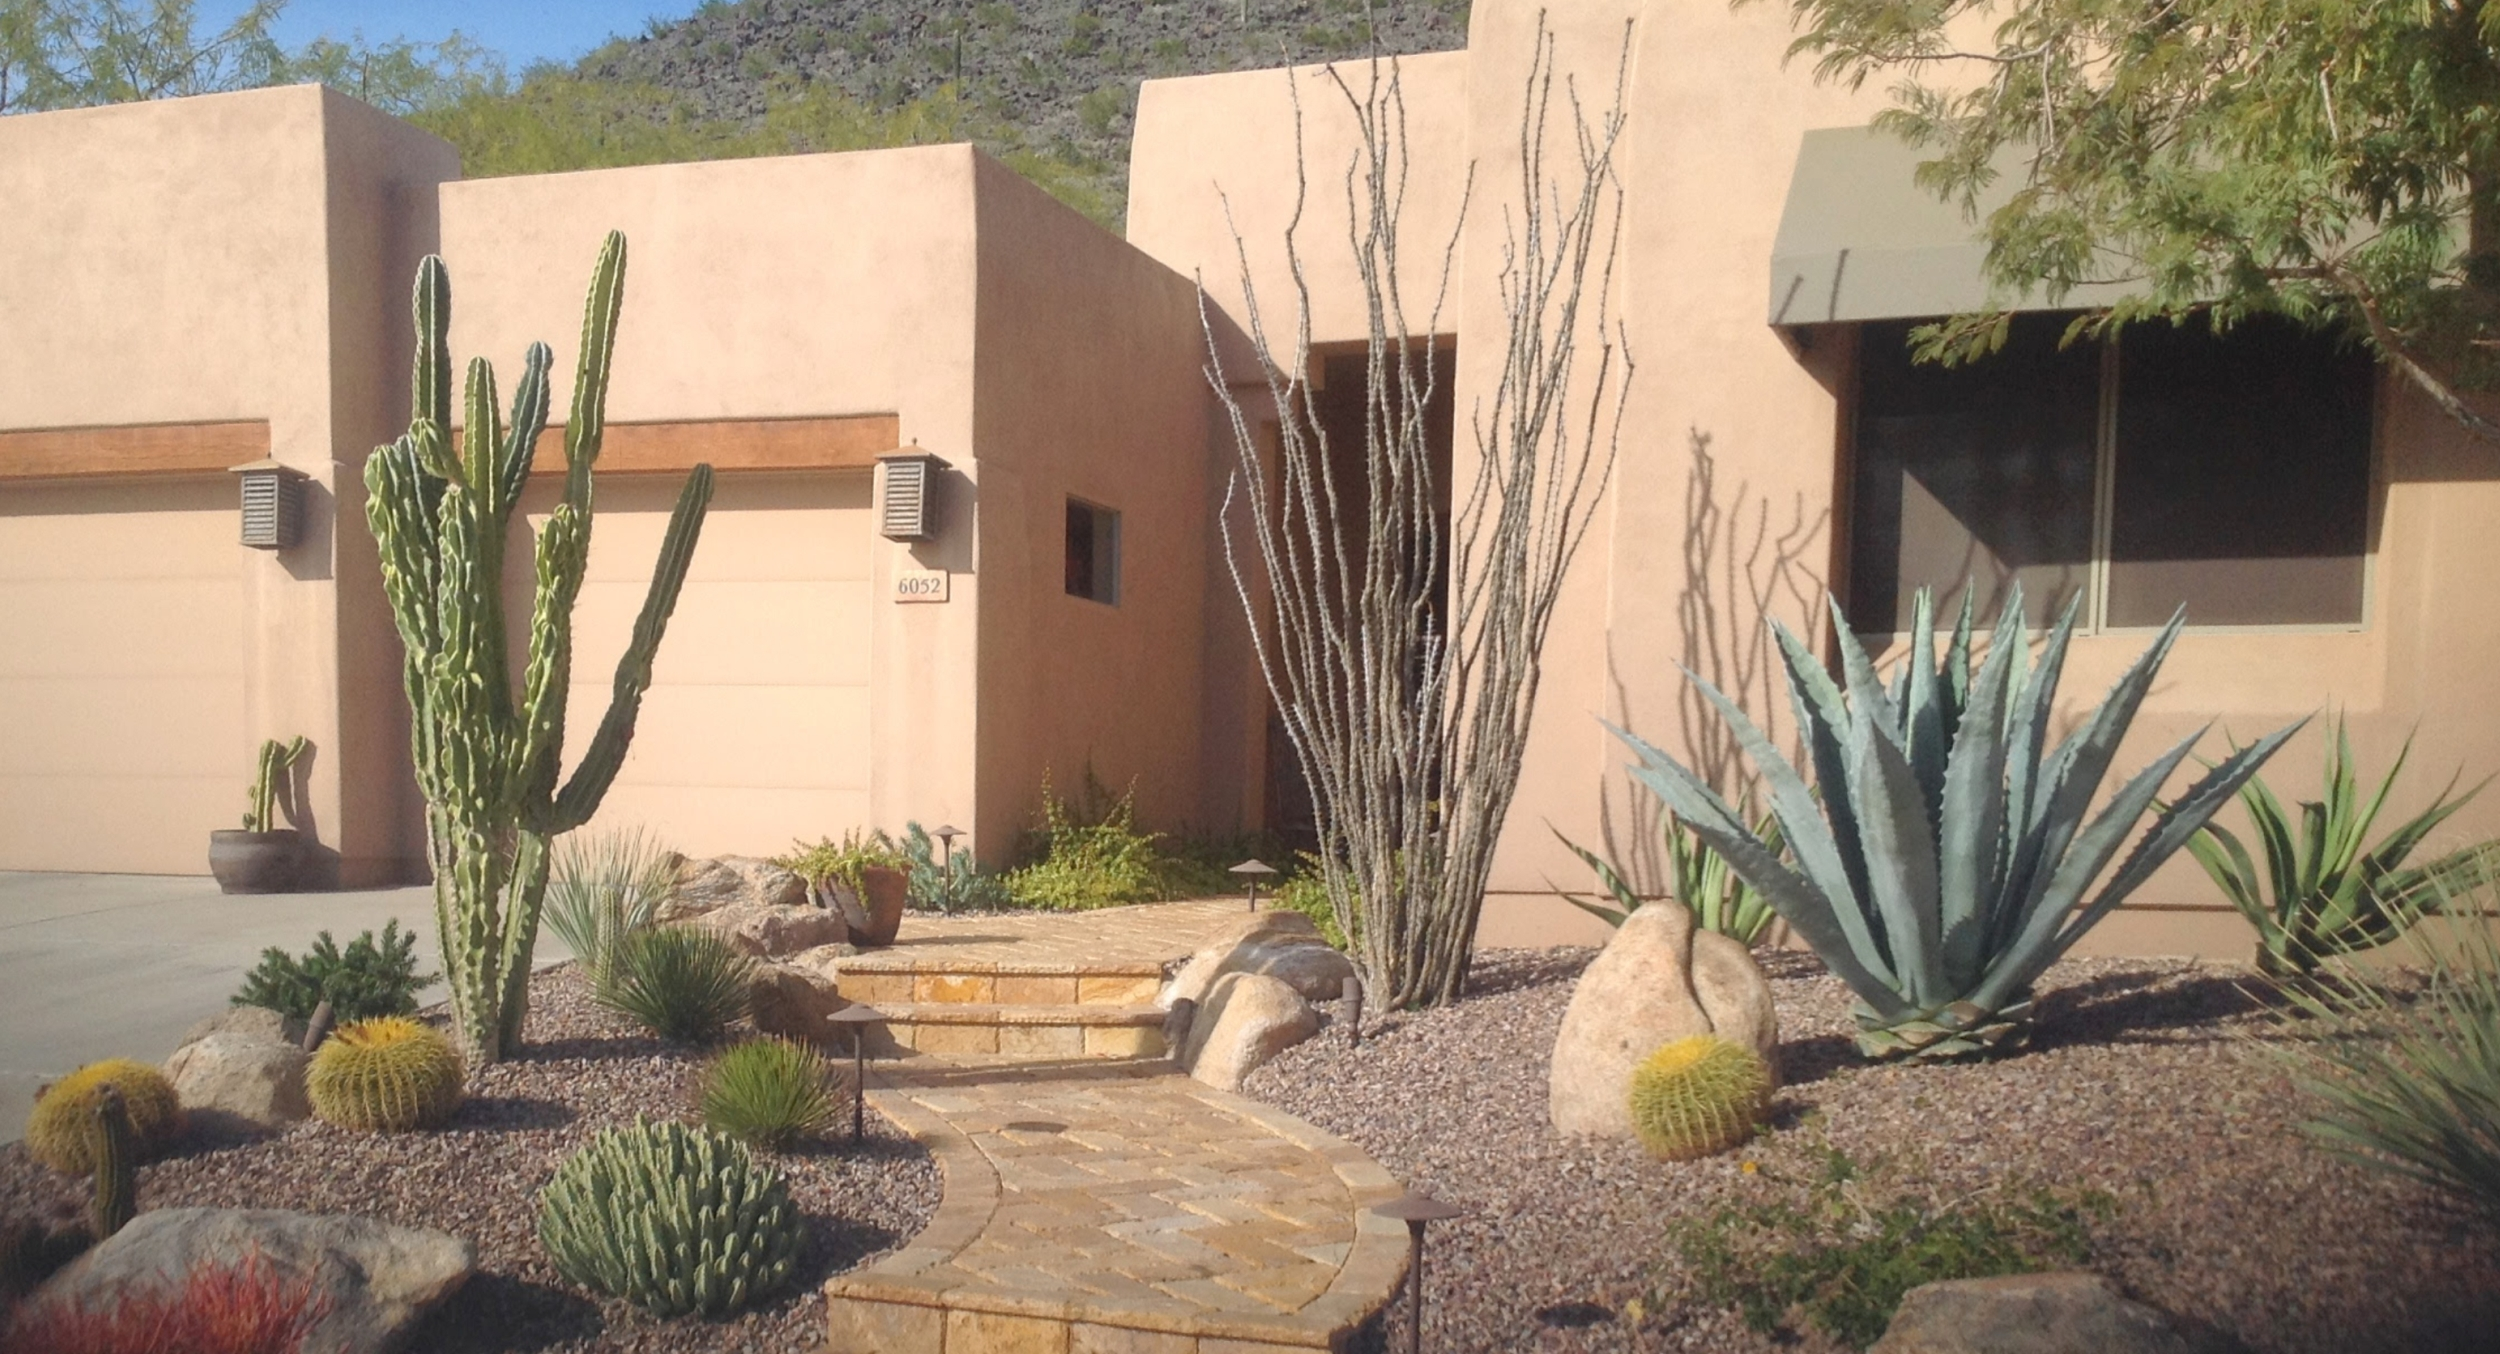 Softscaping covers all the plants used for landscaping in Phoenix & Scottsdale; usually a mix of trees, shrubs, cacti, succulents, and perennials.